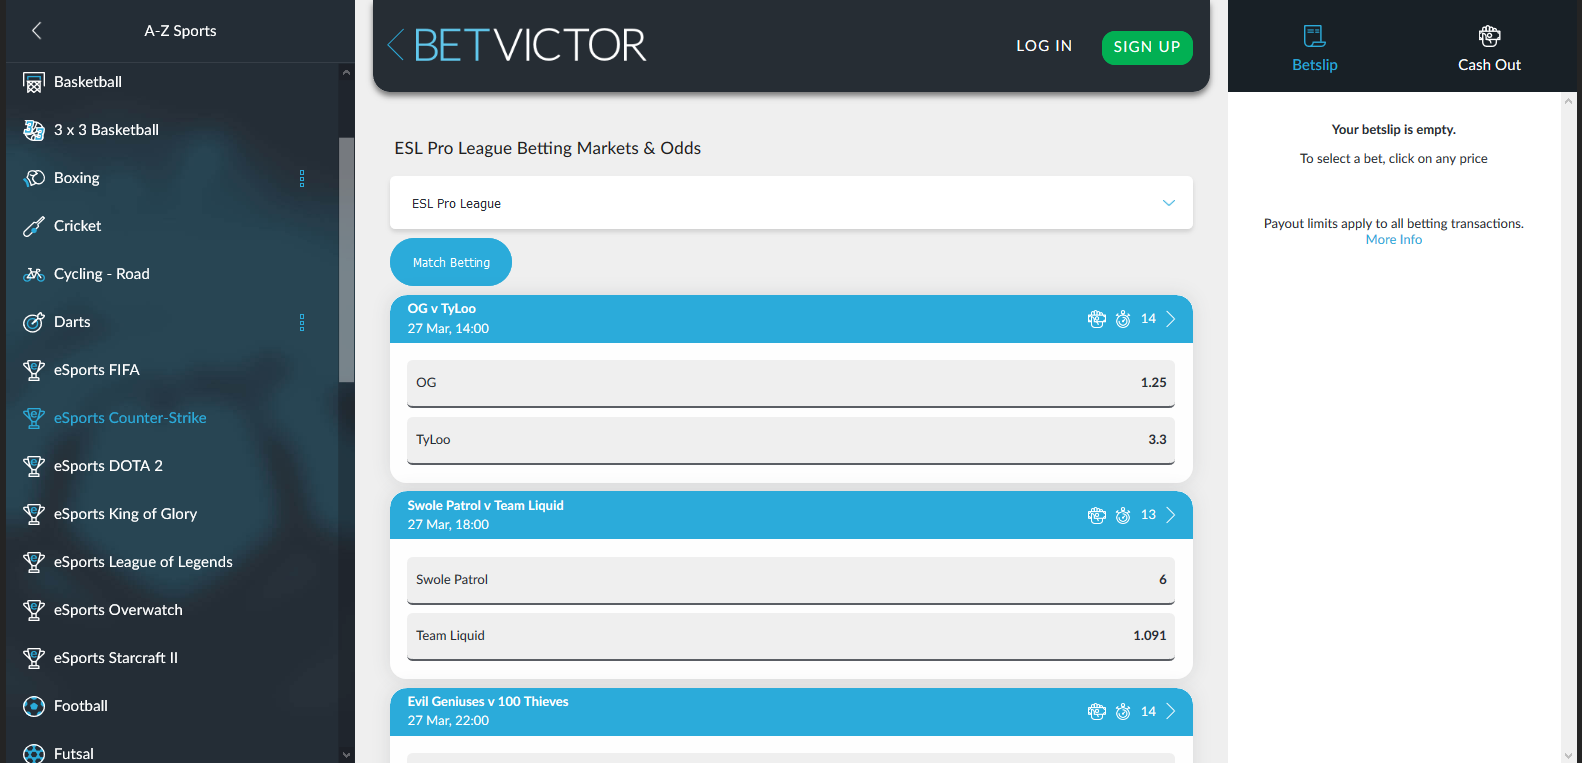 betvictor esports betting offer